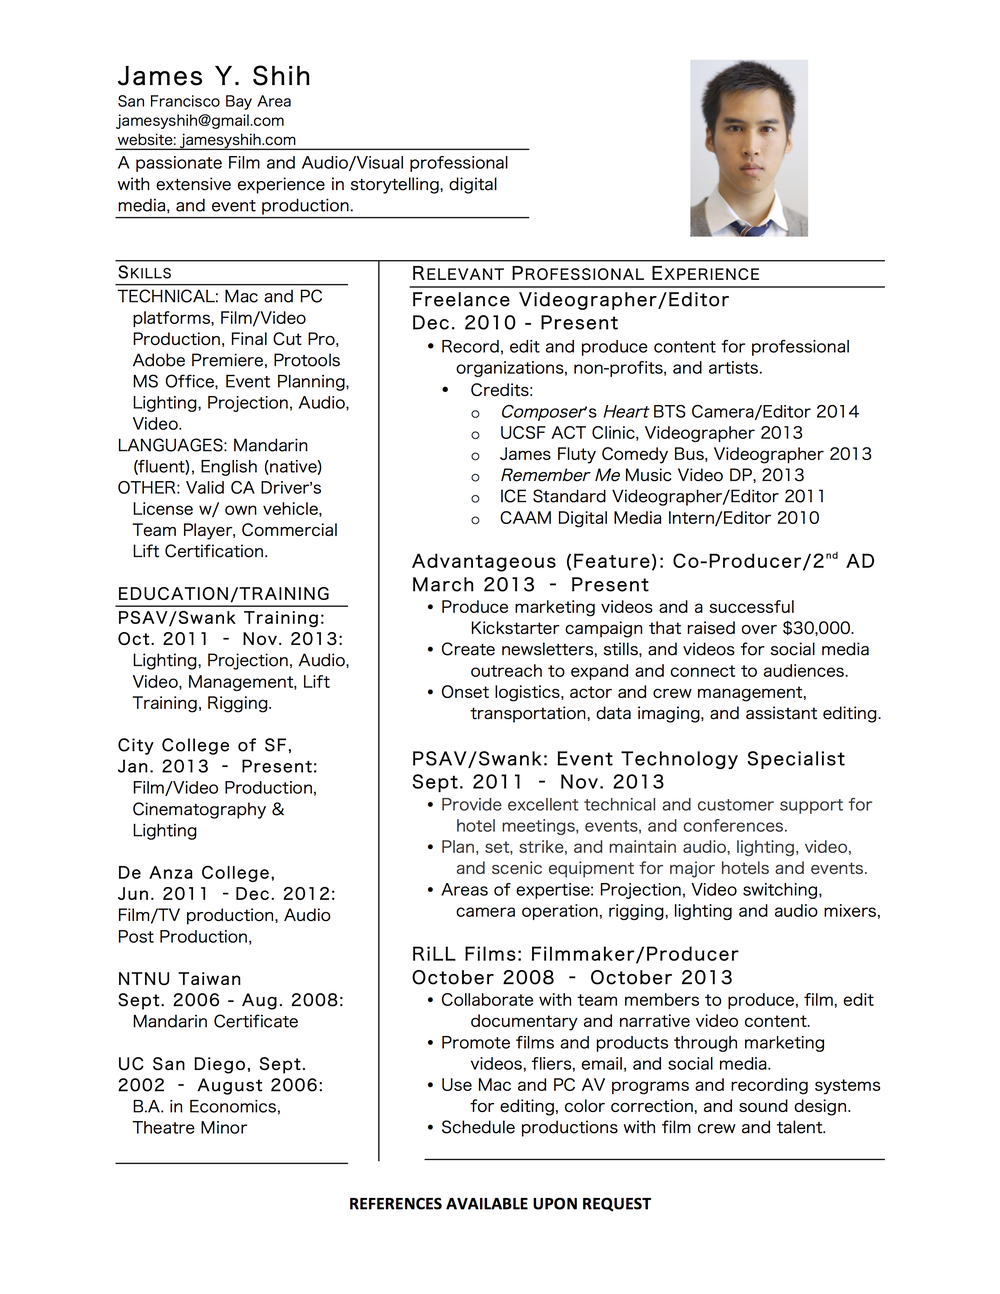 JamesShih_Resume_2014-01-15_post.jpg